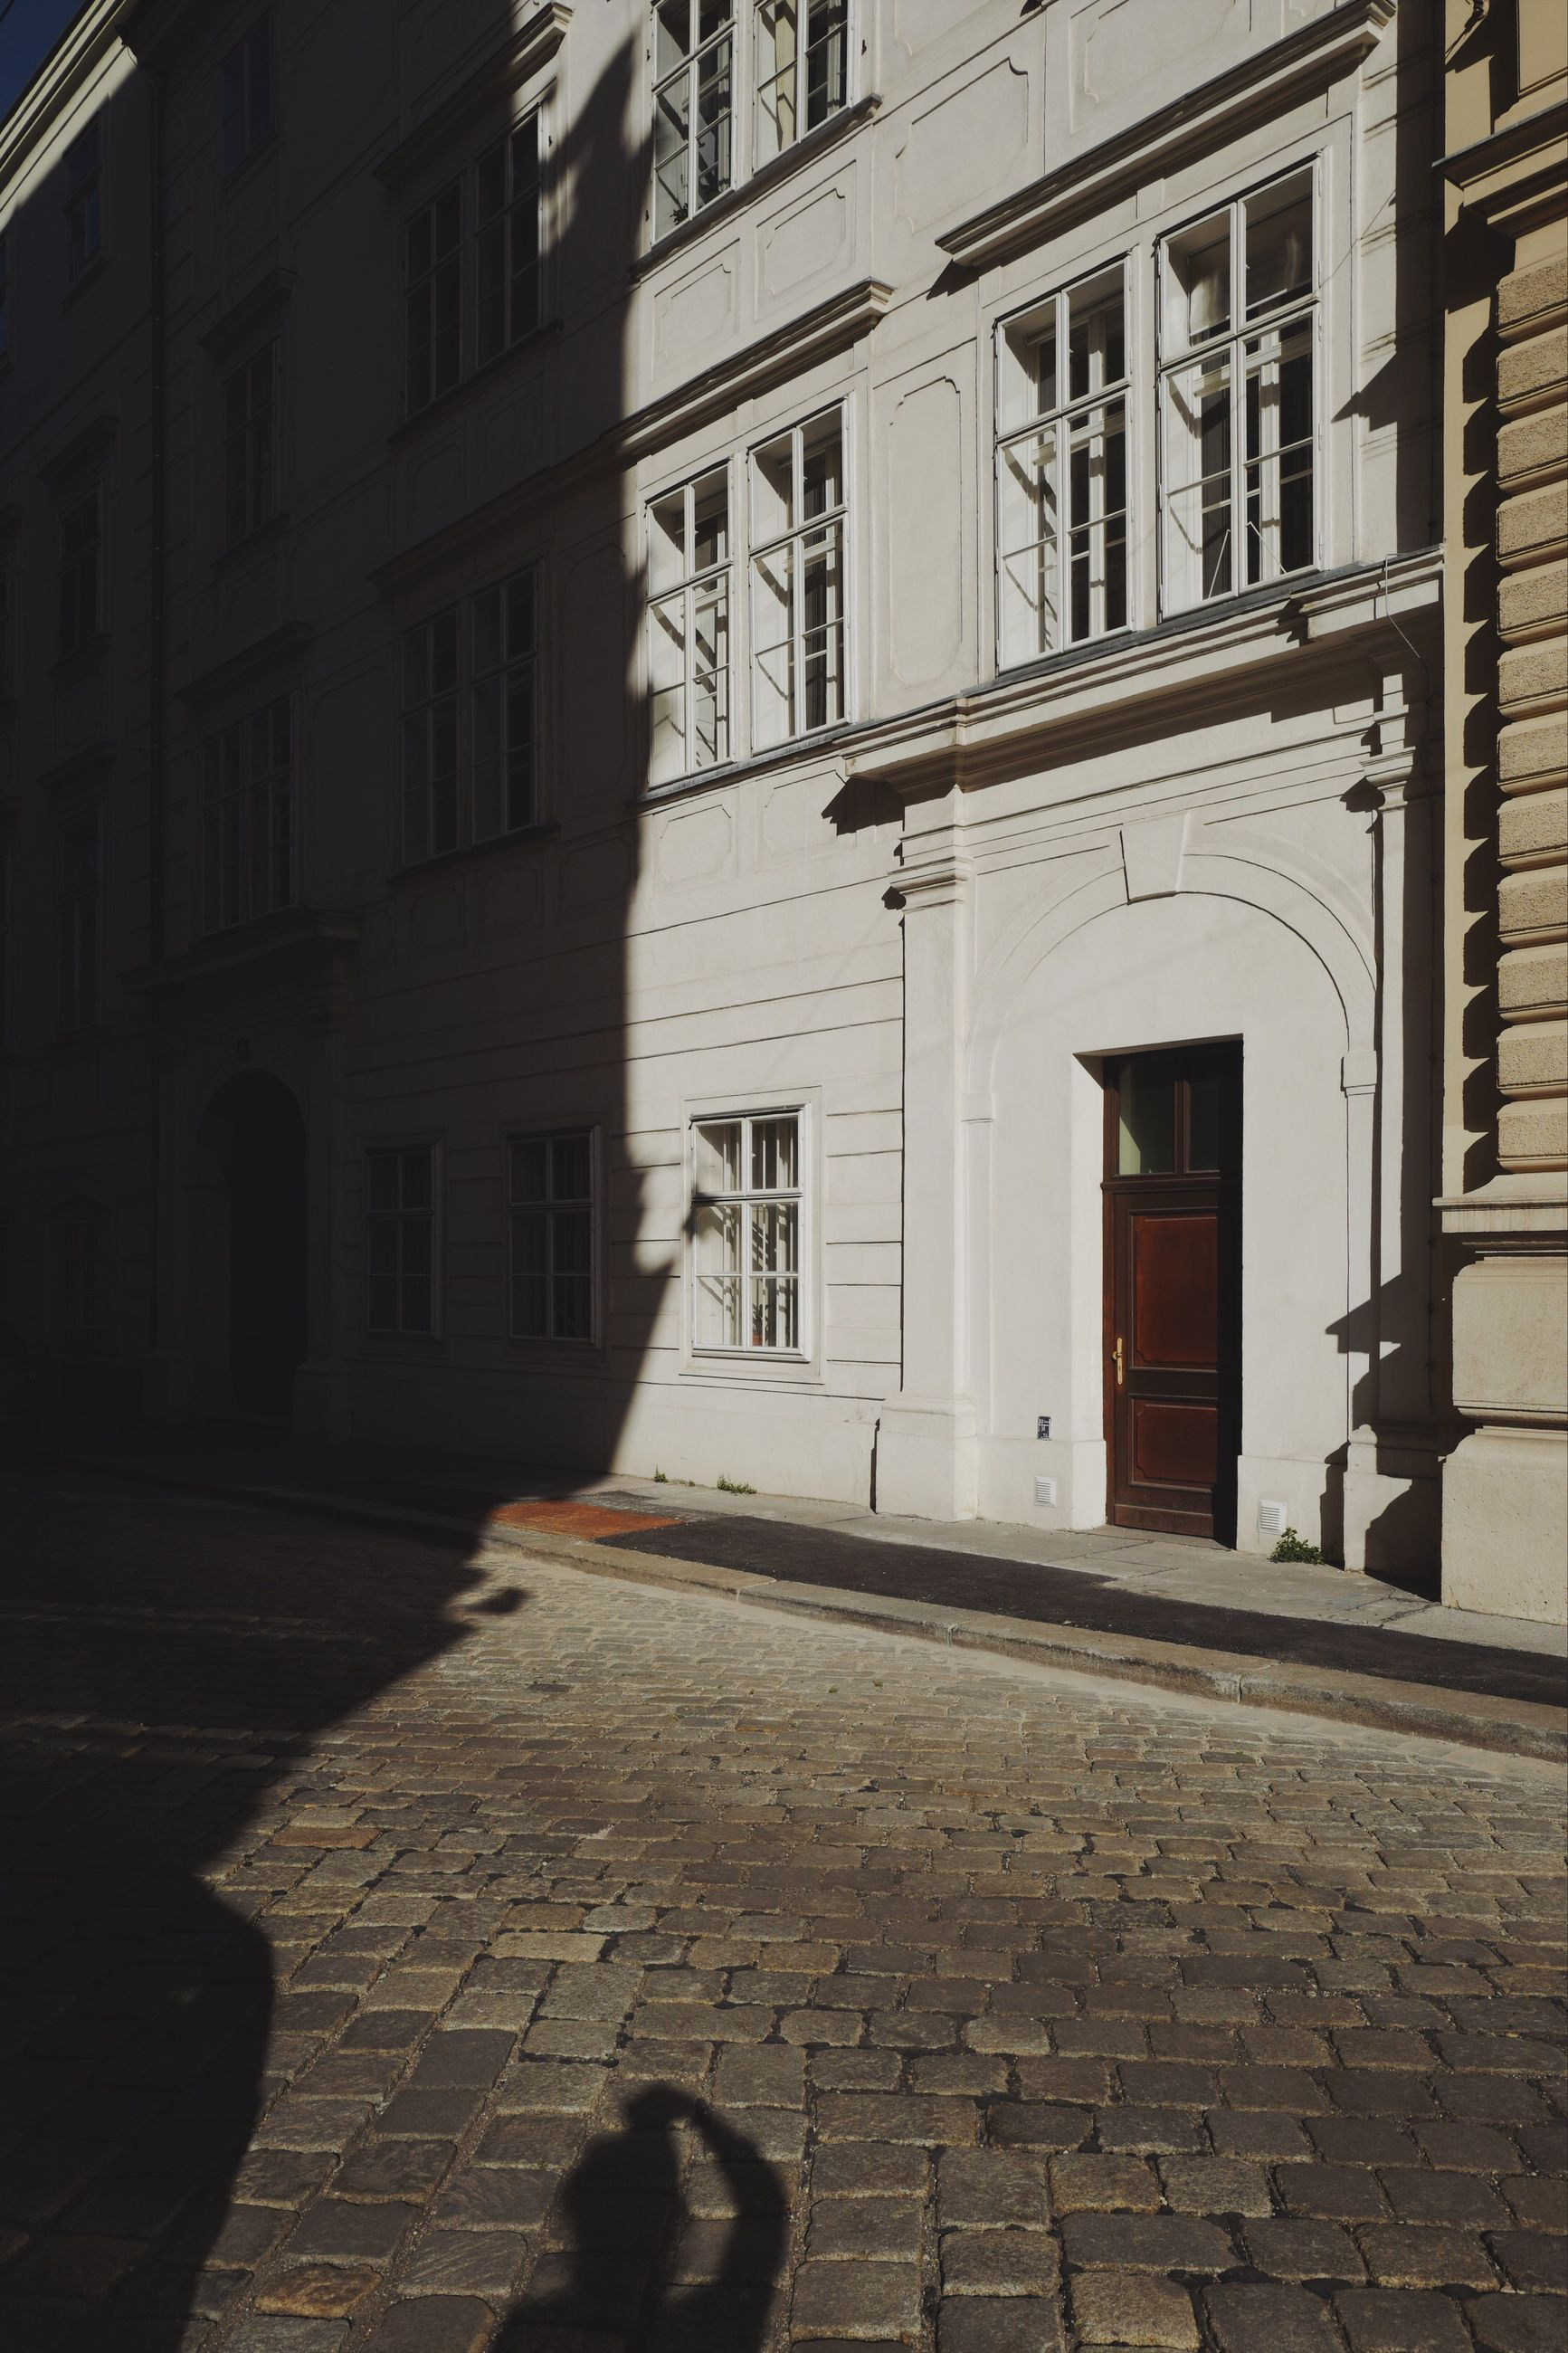 built structure, architecture, building exterior, building, city, street, day, residential district, window, sunlight, shadow, footpath, no people, outdoors, cobblestone, nature, entrance, door